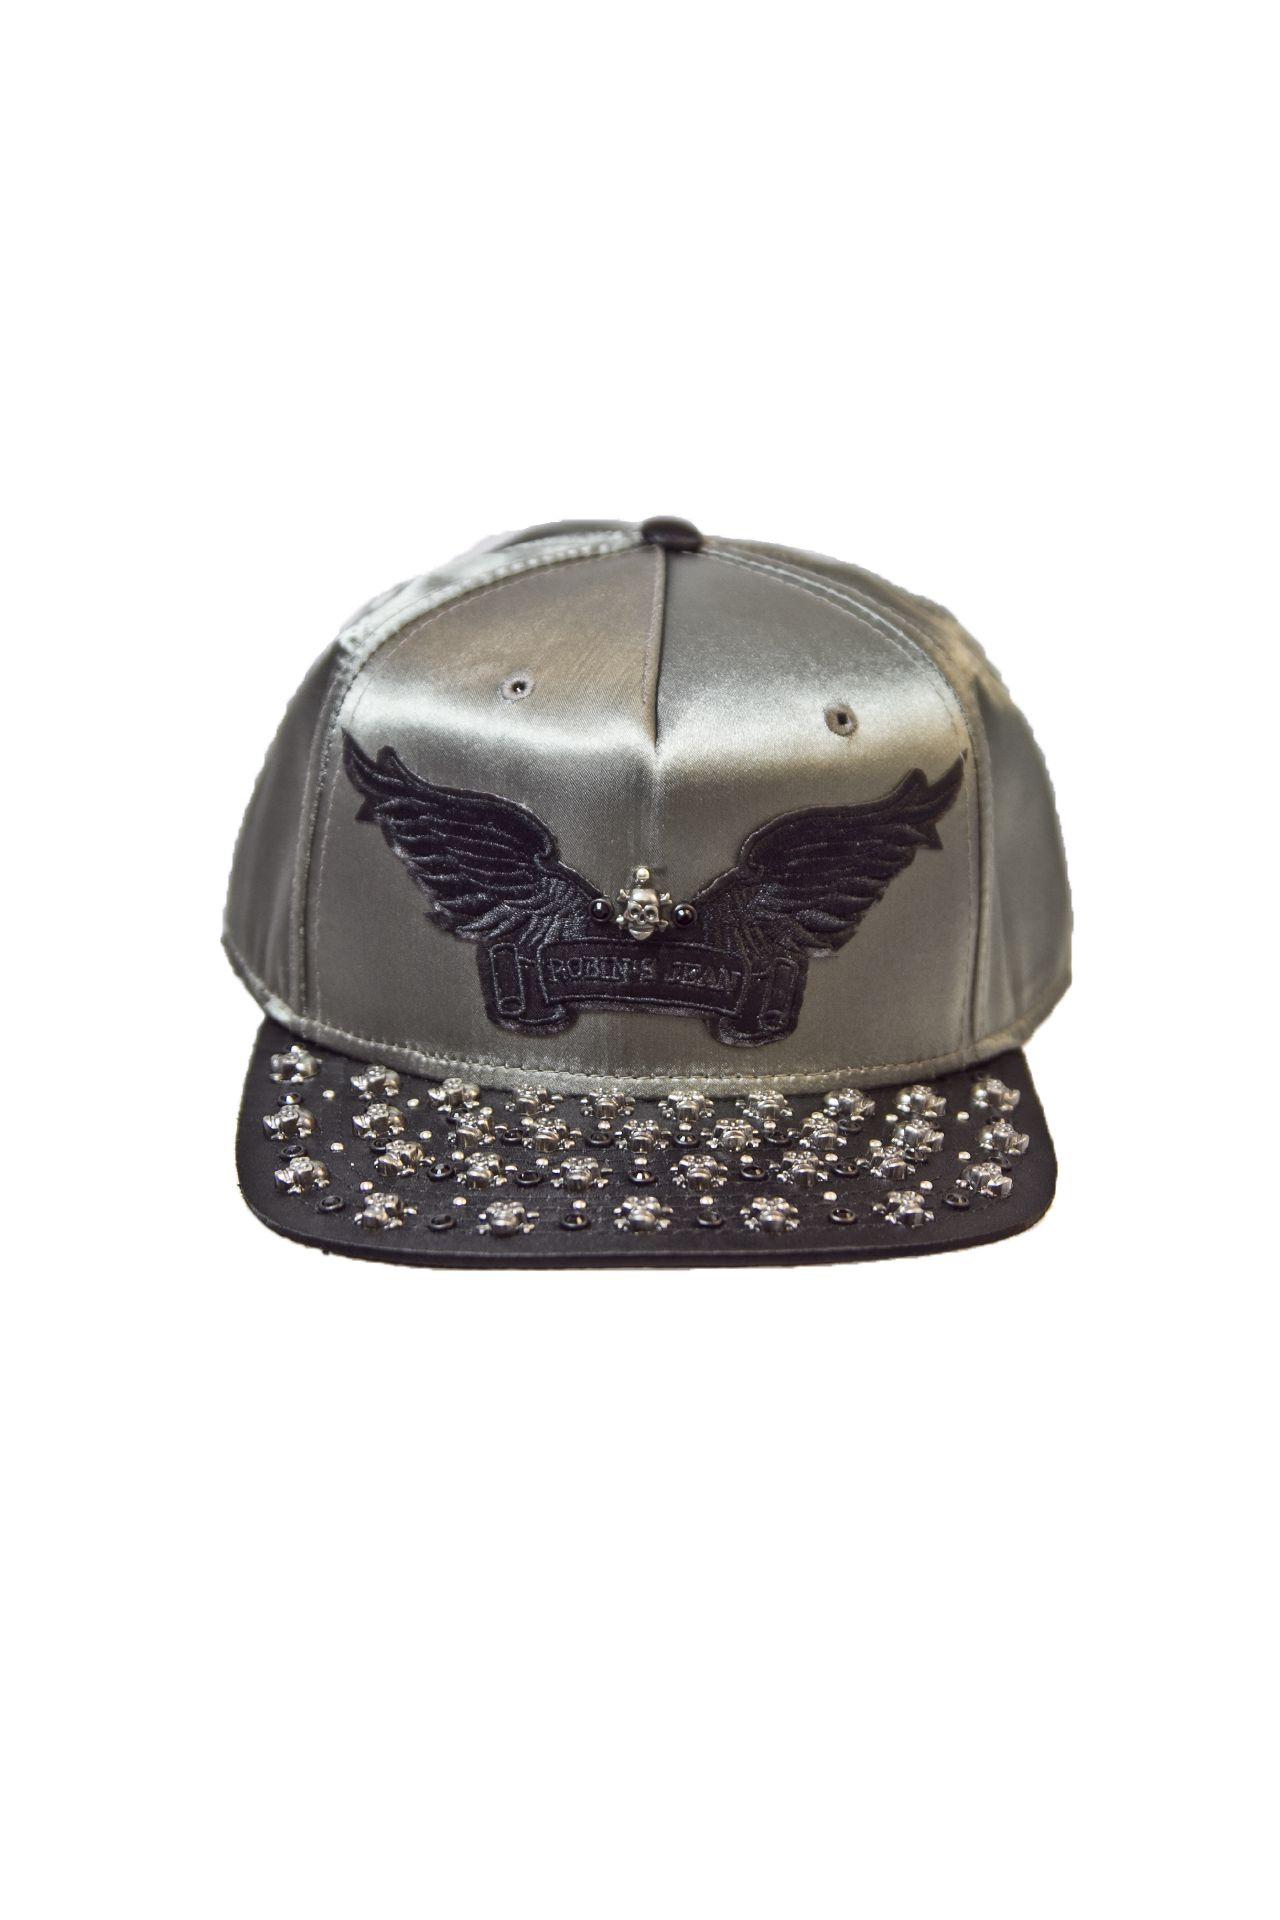 SILVER SATIN CAP 2 TONES WITH BLACK CRYSTALS, SILVER SKULLS AND SIGNATURE WINGS